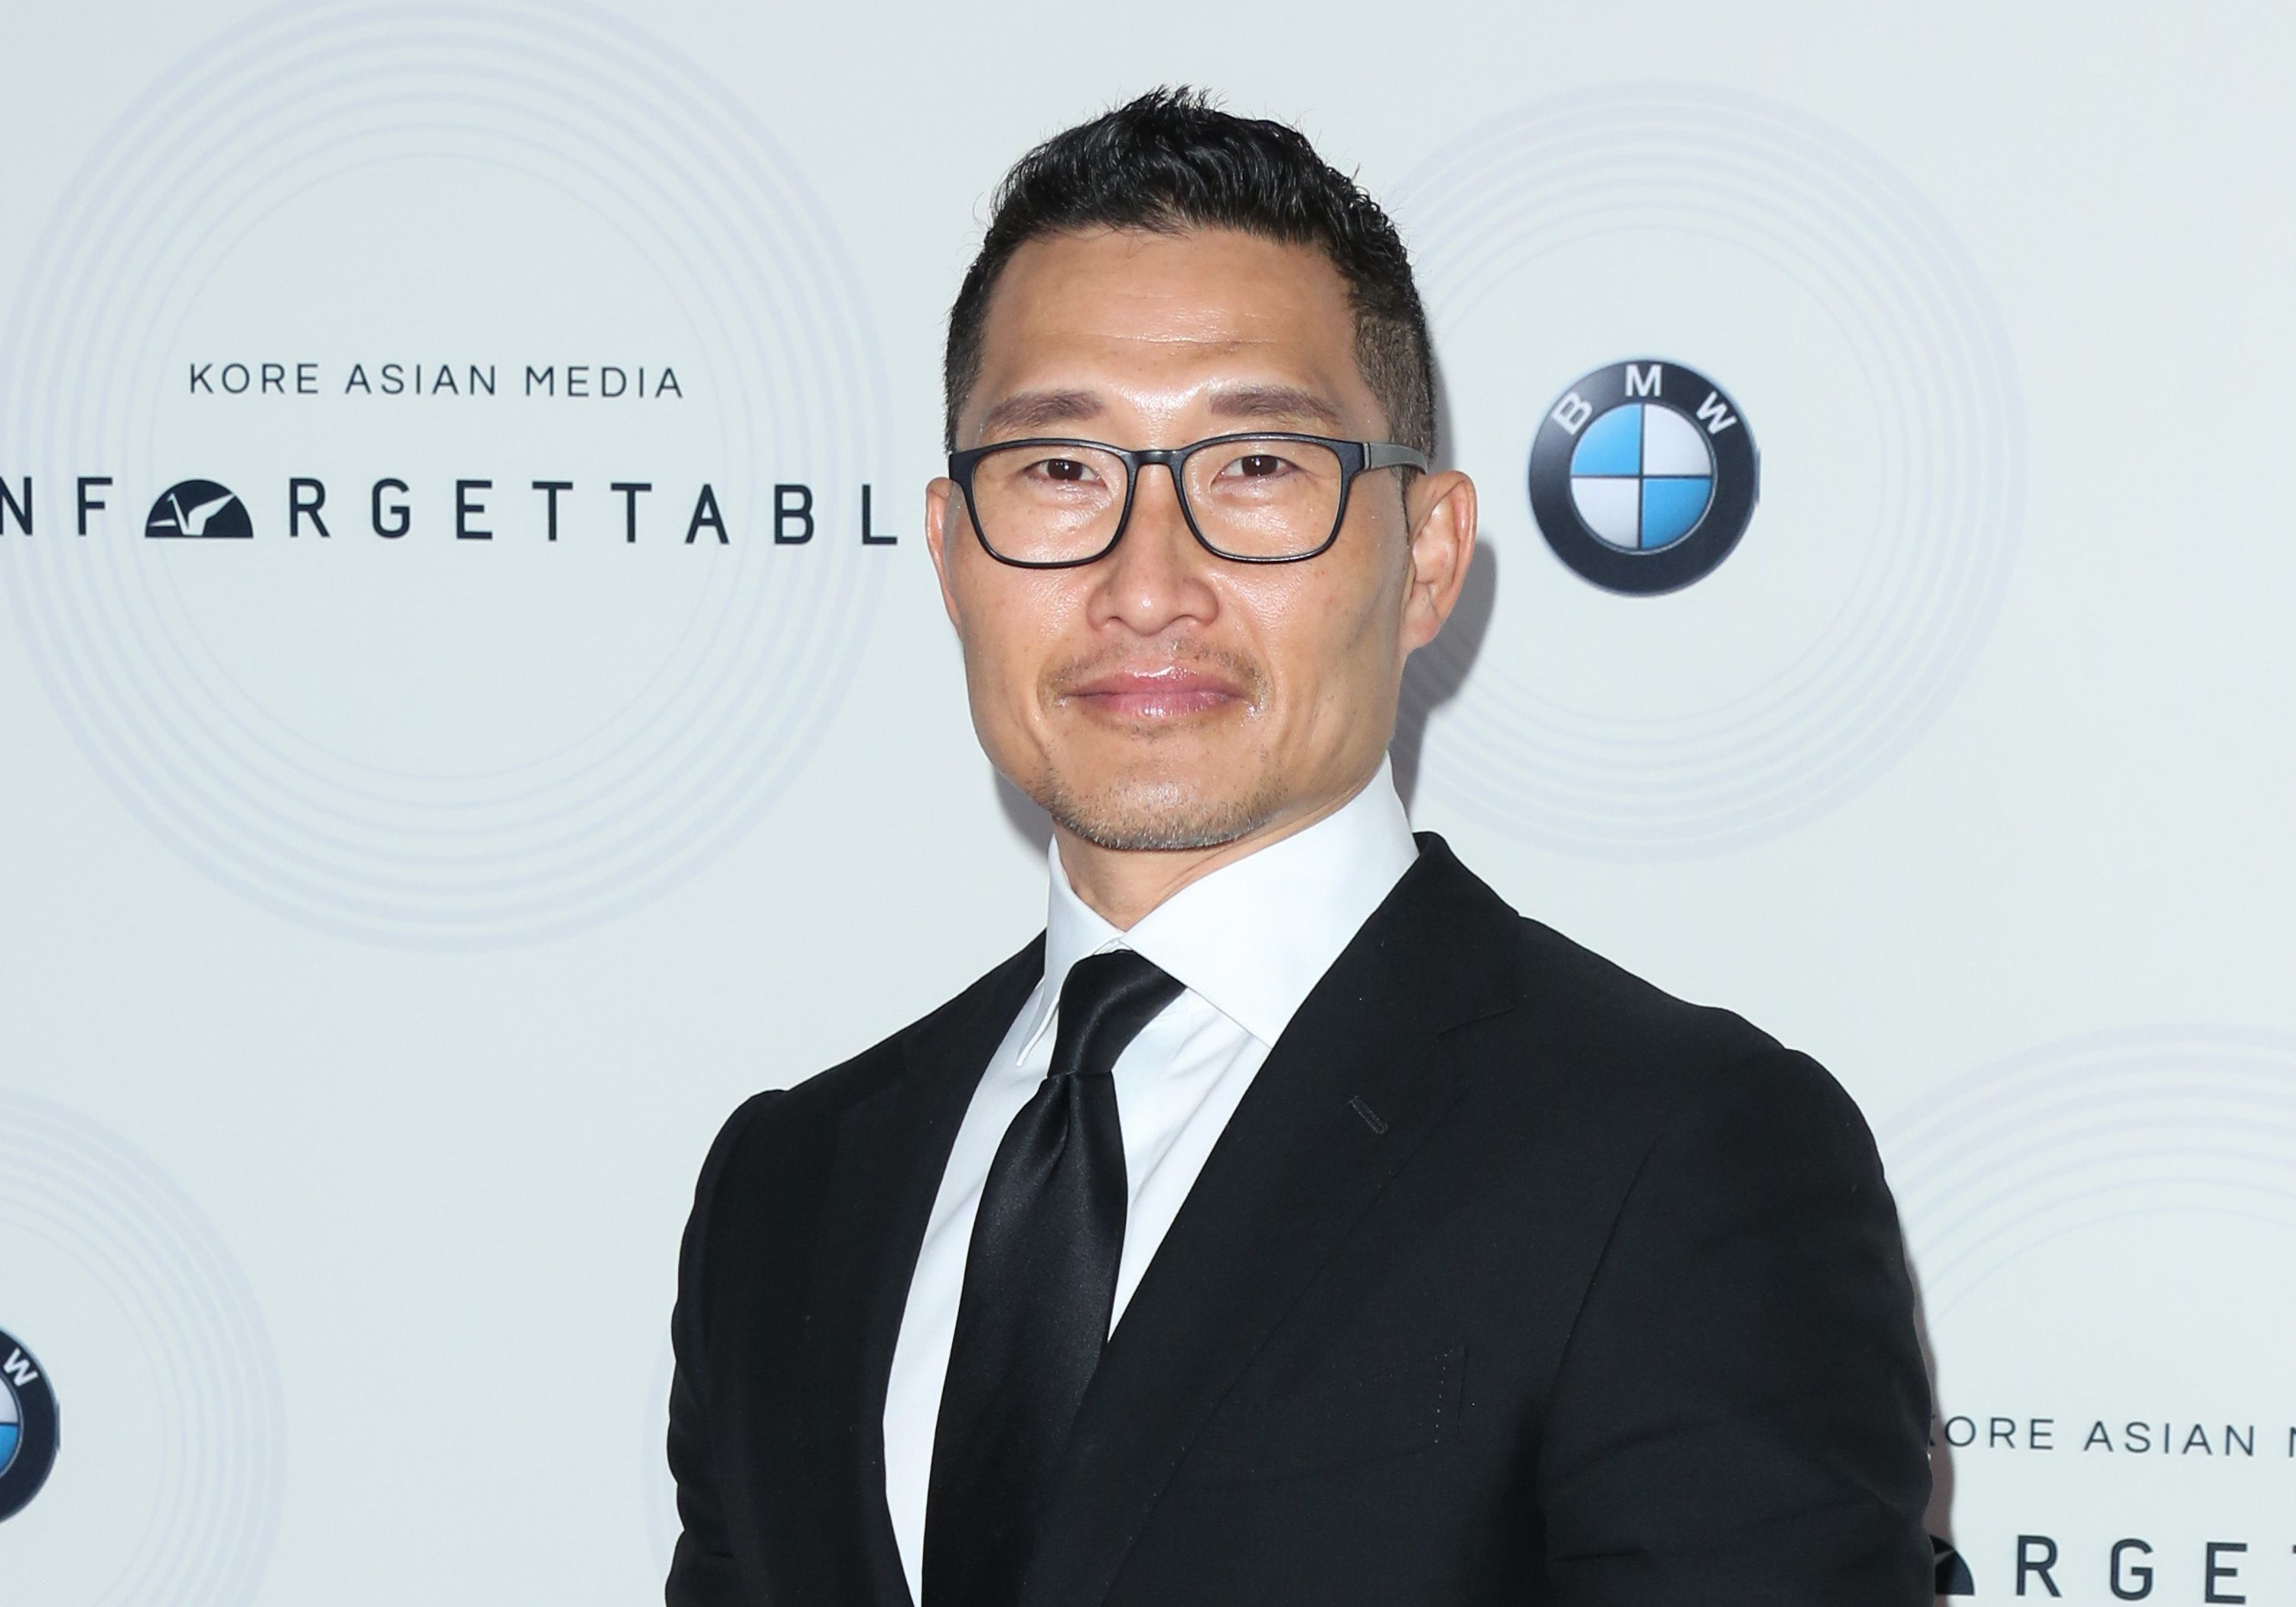 BEVERLY HILLS, CA - DECEMBER 09:  Actor Daniel Dae Kim attends the 16th annual Unforgettable Gala at The Beverly Hilton Hotel on December 9, 2017 in Beverly Hills, California.  (Photo by Paul Archuleta/FilmMagic)